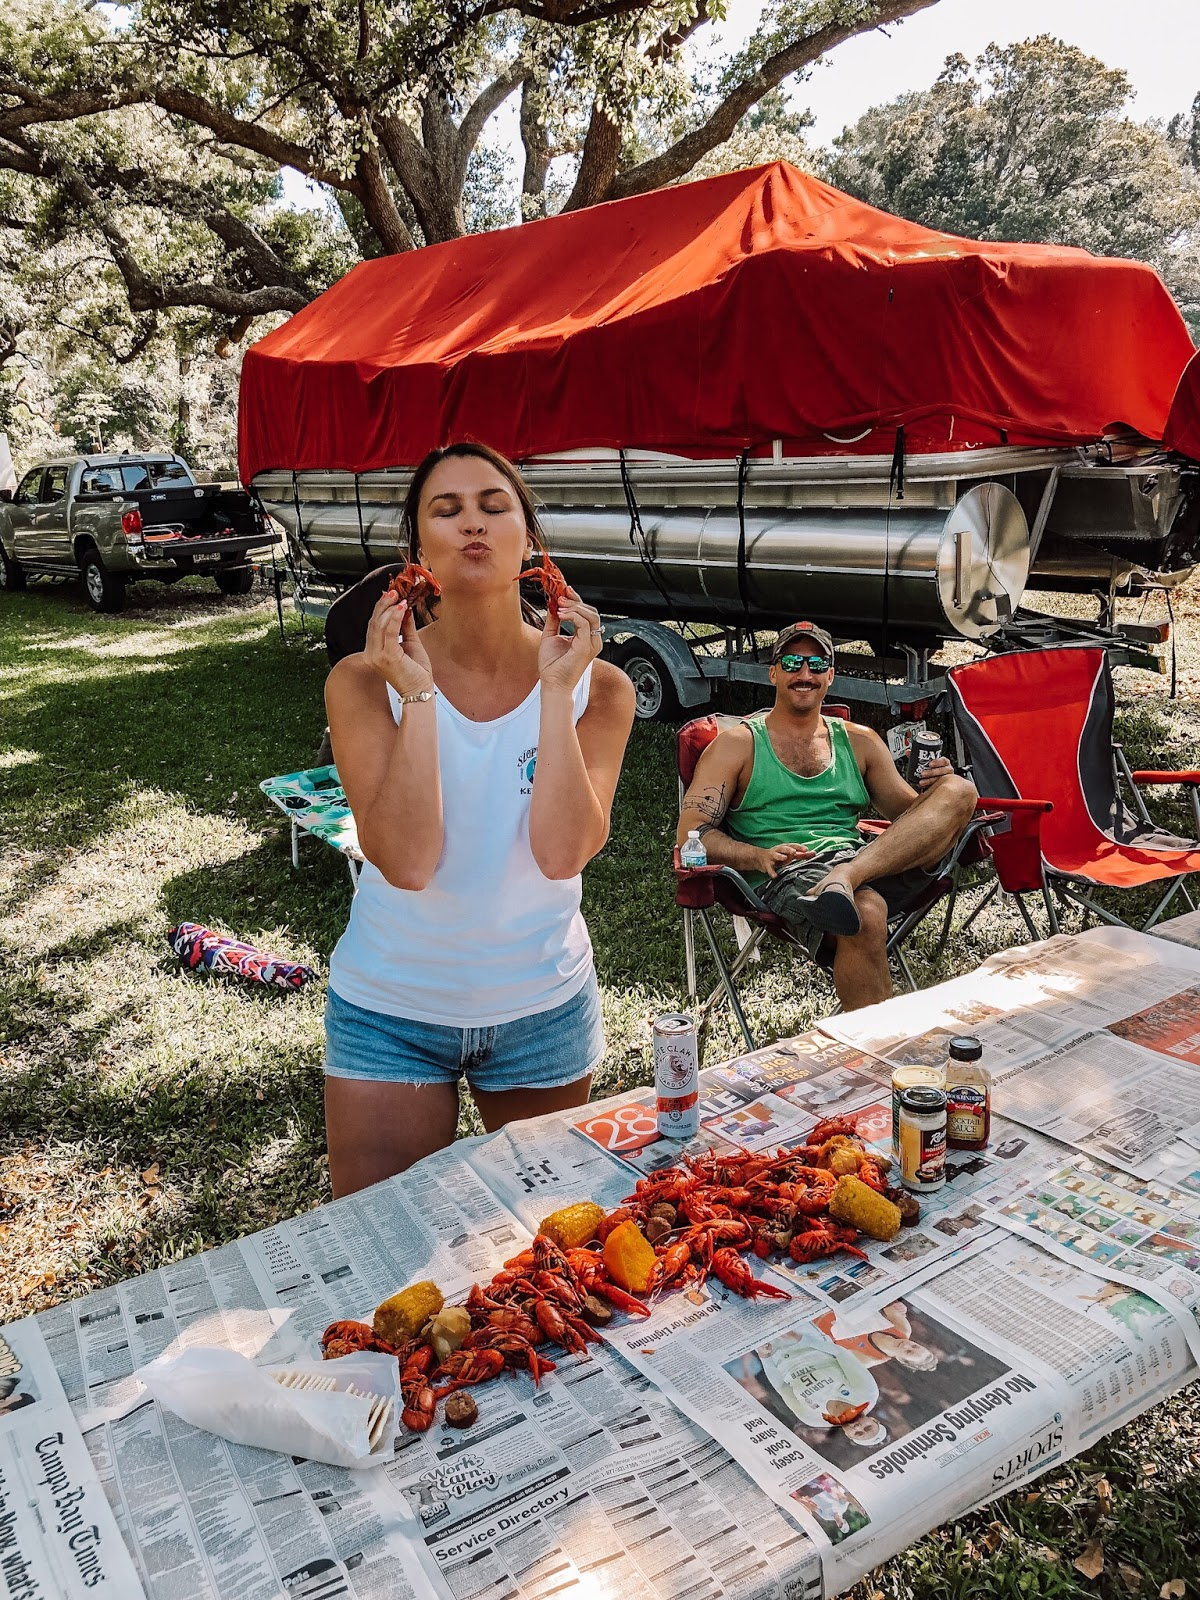 Tampa bay blogger at a crawfish boil in Largo, Florida